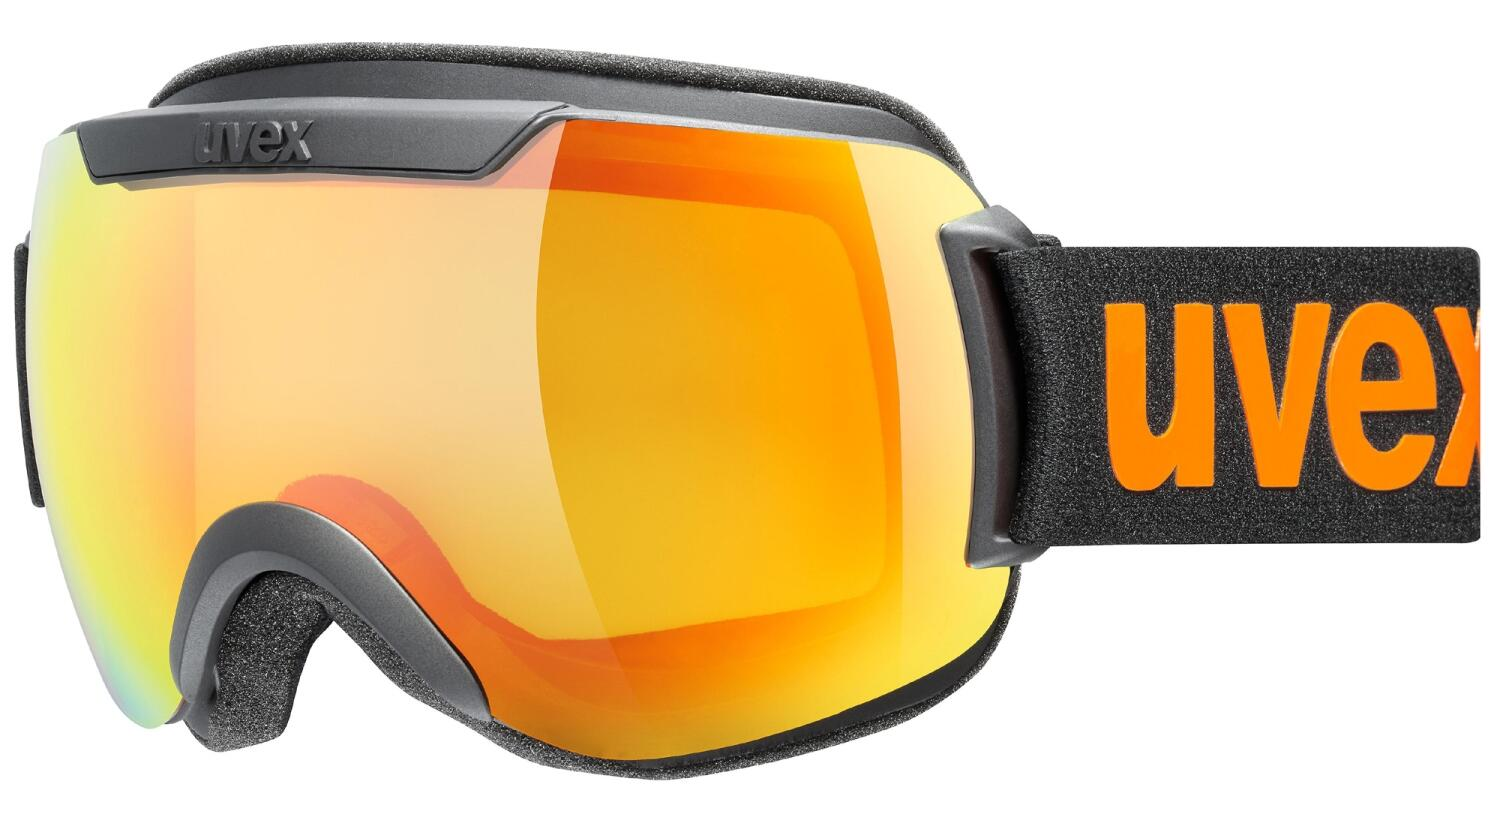 uvex-downhill-2000-cv-skibrille-farbe-2530-black-mat-mirror-orange-colorvision-yellow-s1-